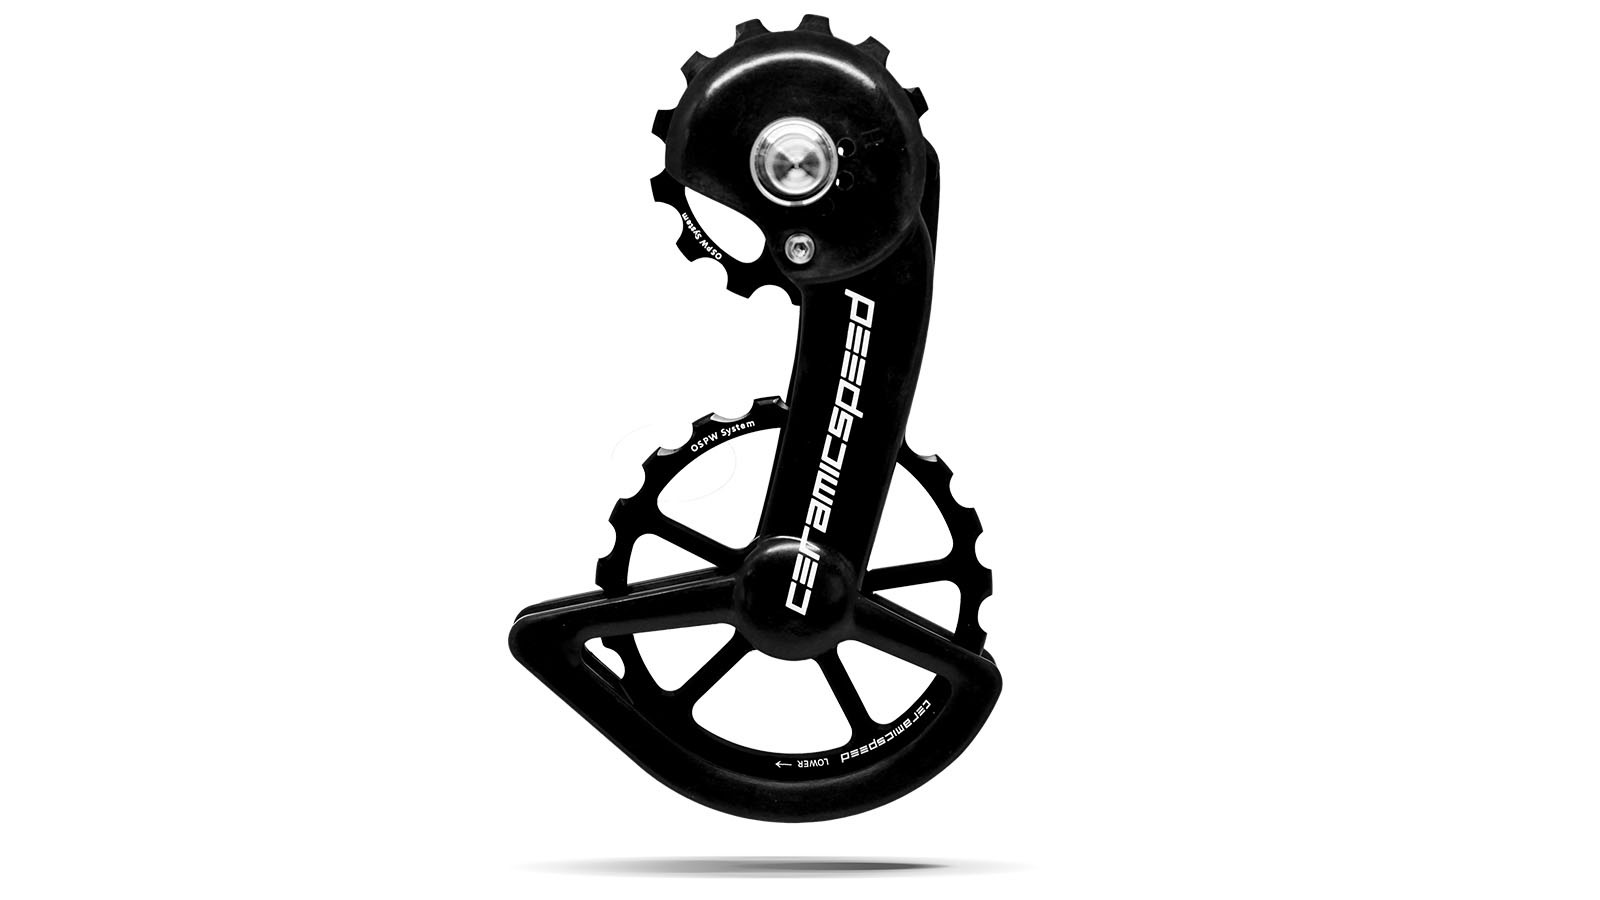 CermaicSpeed's new 13/19t pulley for Shimano Dura-Ace 9100 and 9150 derailleurs